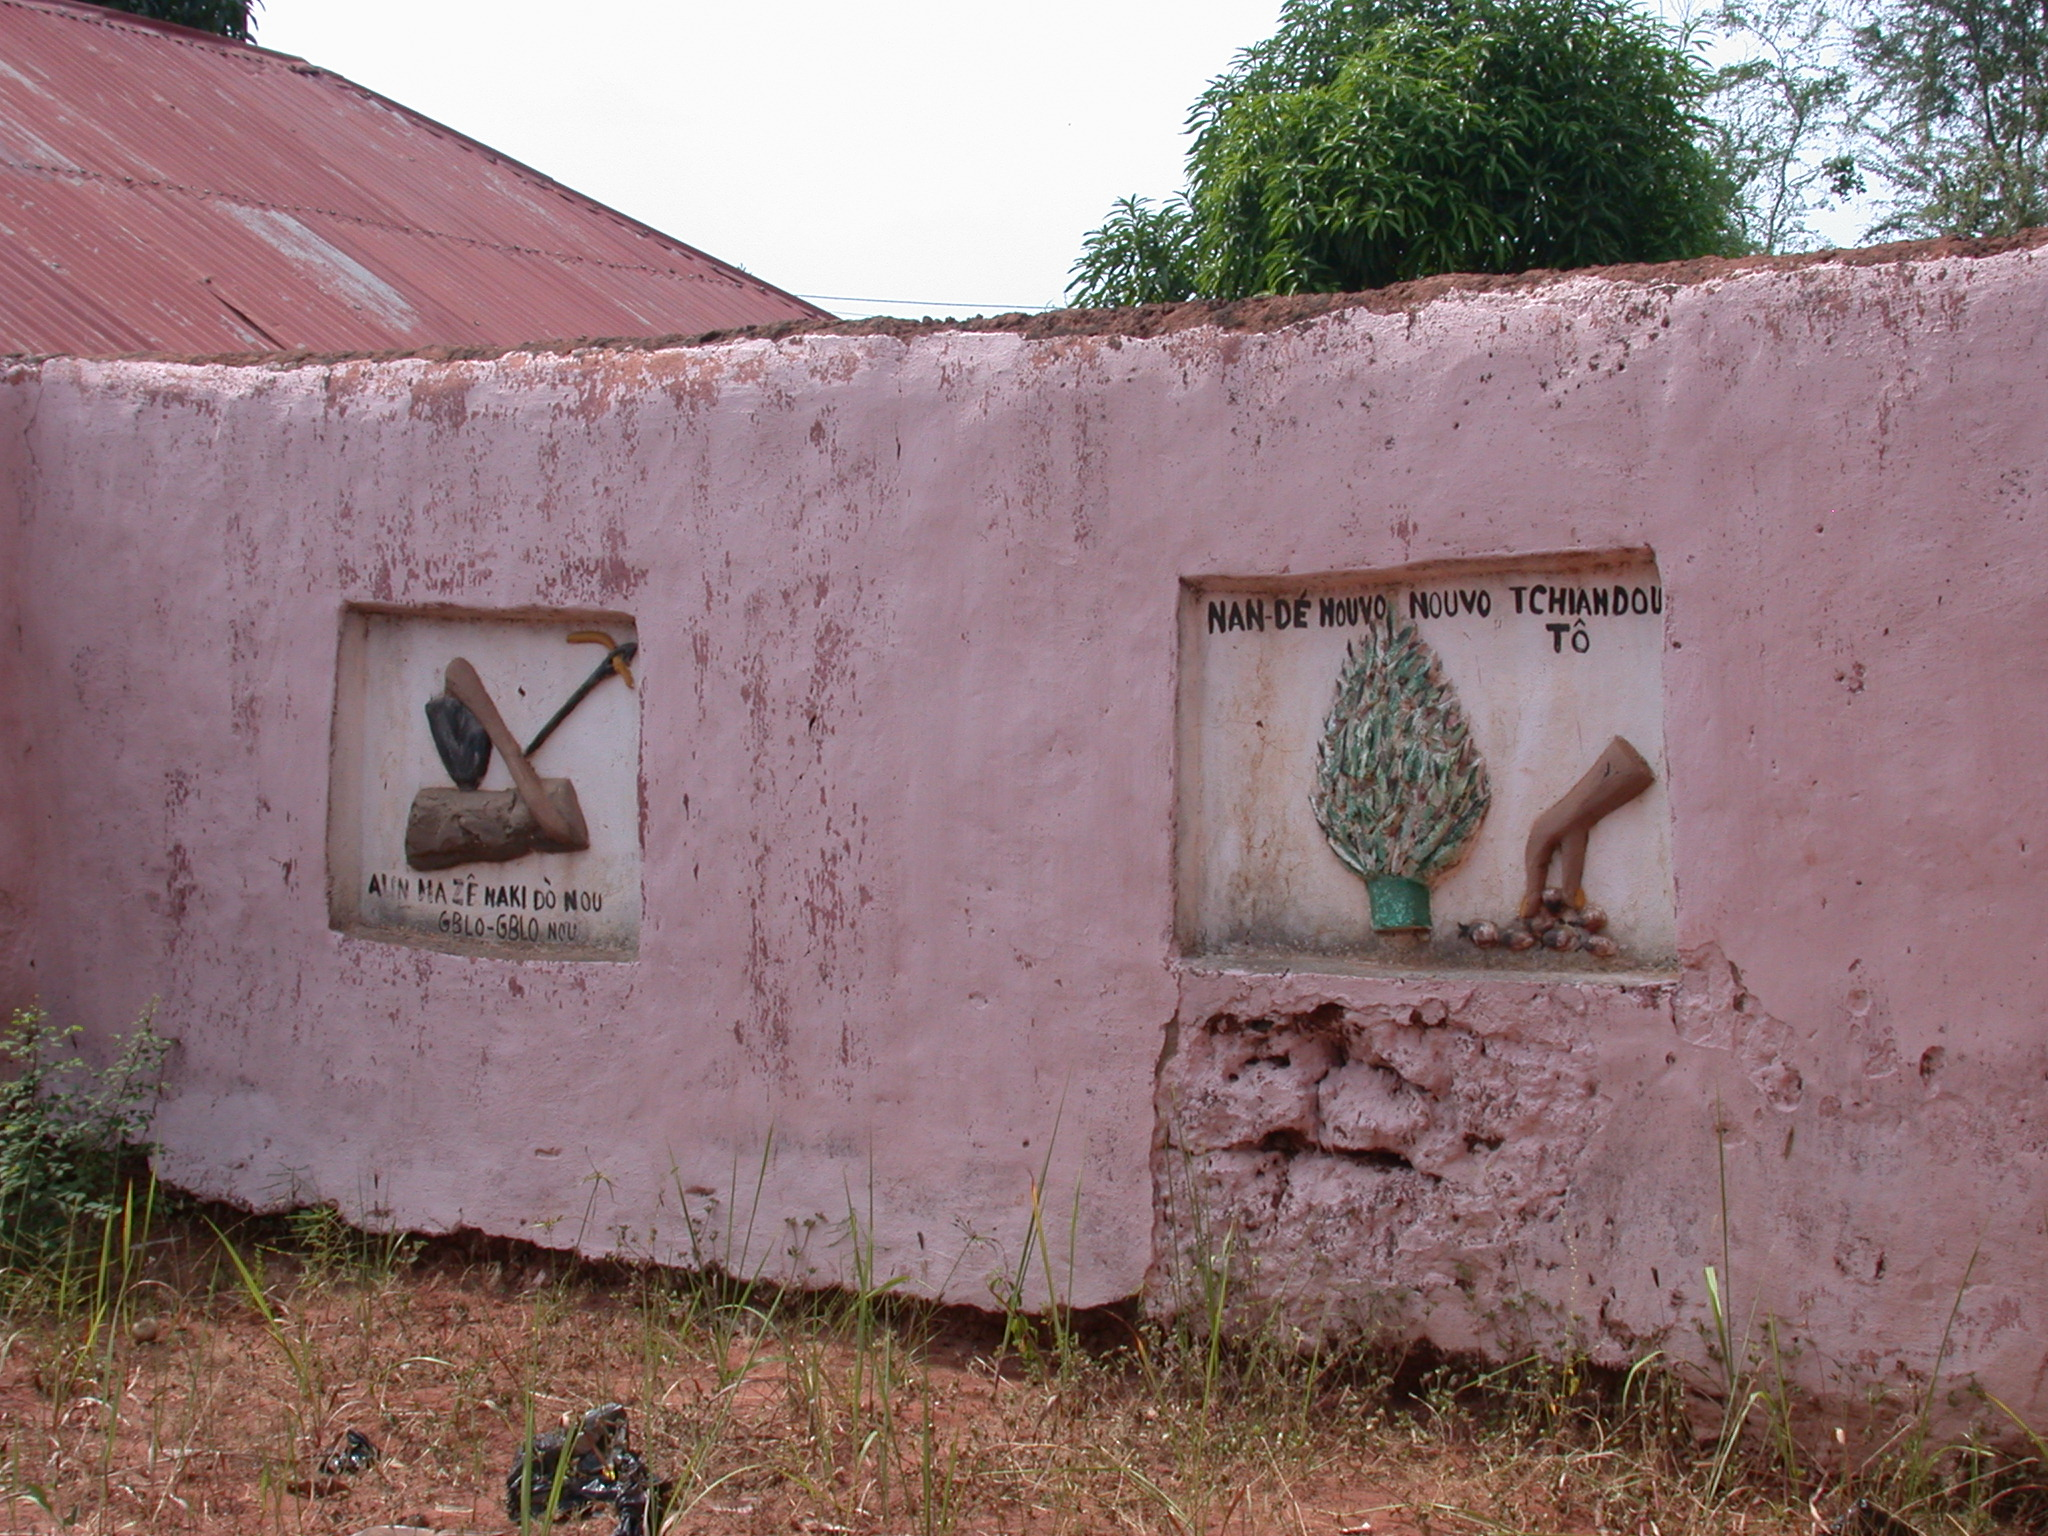 Wall Designs in Courtyard, Palace of Crown Prince Agonglo, Abomey, Benin